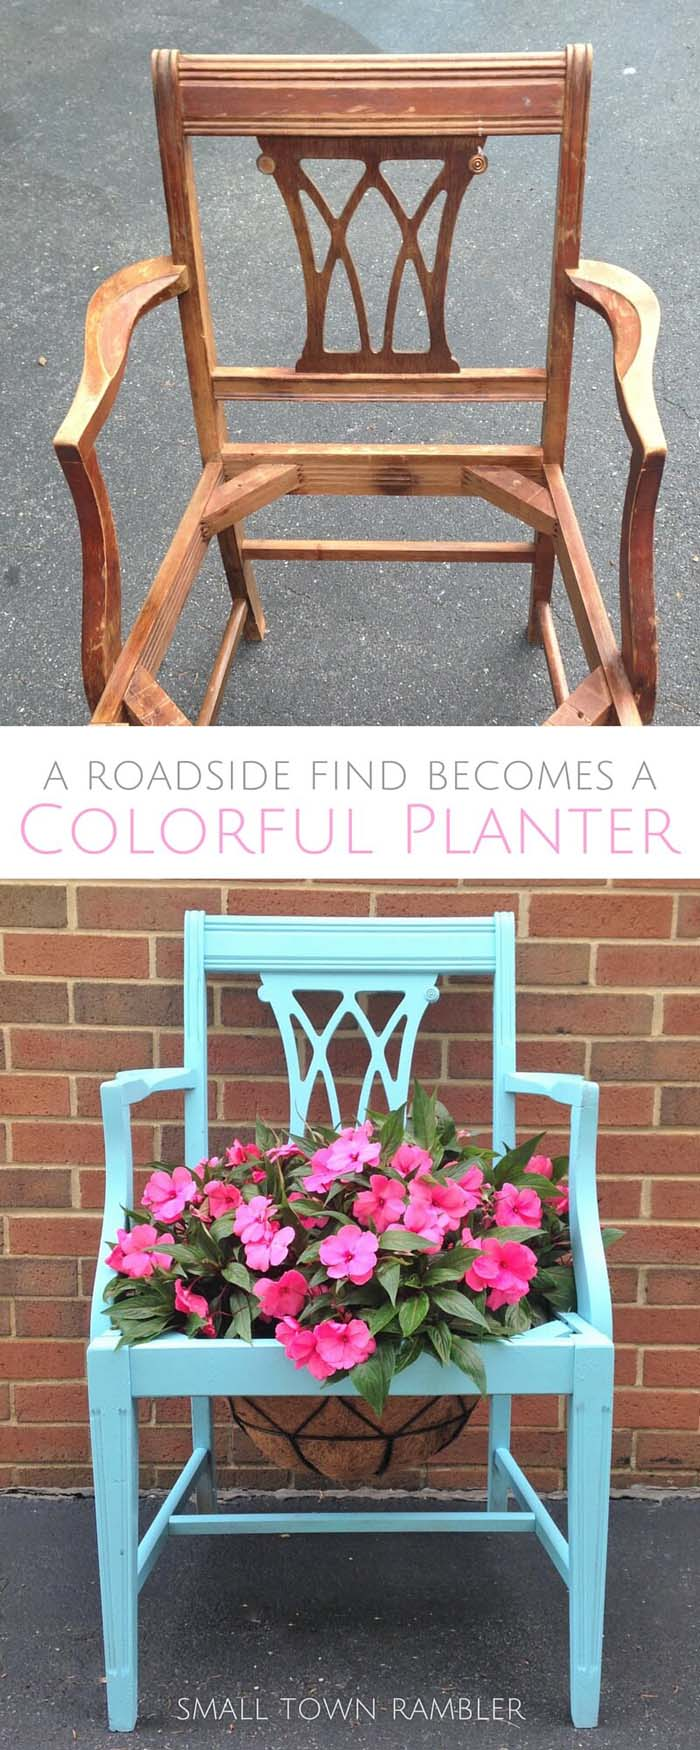 Brightly Painted Planter for Your Garden #chair #diy #repurposed #decorhomeideas